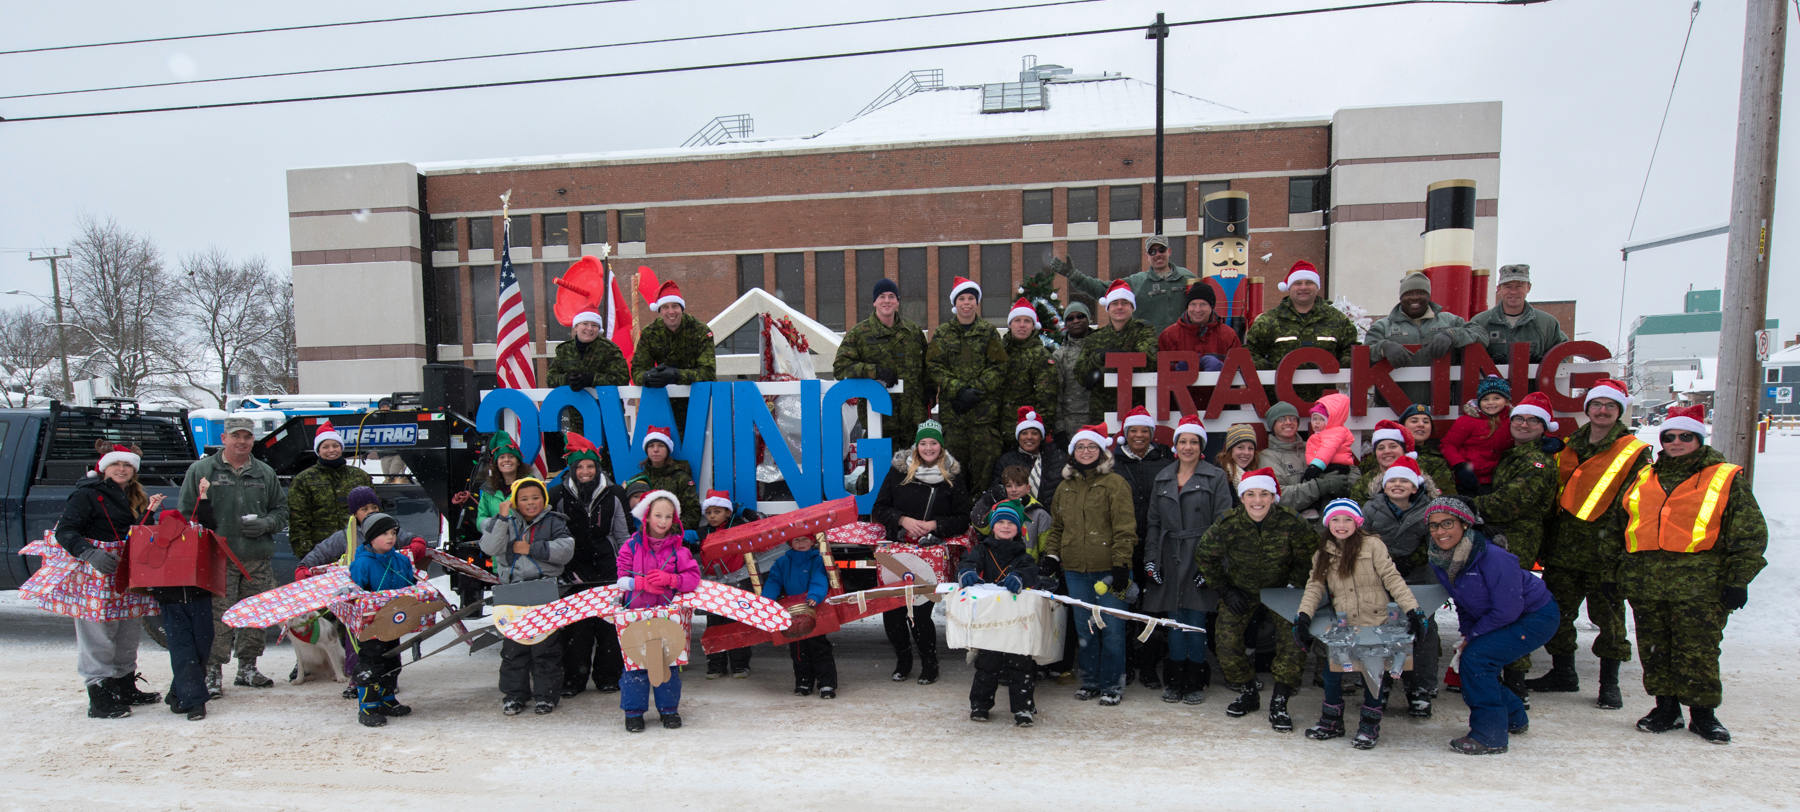 Canadian and American service personnel and their families at 22 Wing North Bay, Ontario, gather in from the parade float that was part of their entry in the city's annual Santa Claus parade on November 19, 2017. This was the first year that 22 Wing participated in the annual parade. PHOTO: Corporal Joseph Morin, NB02-2017-0271-022